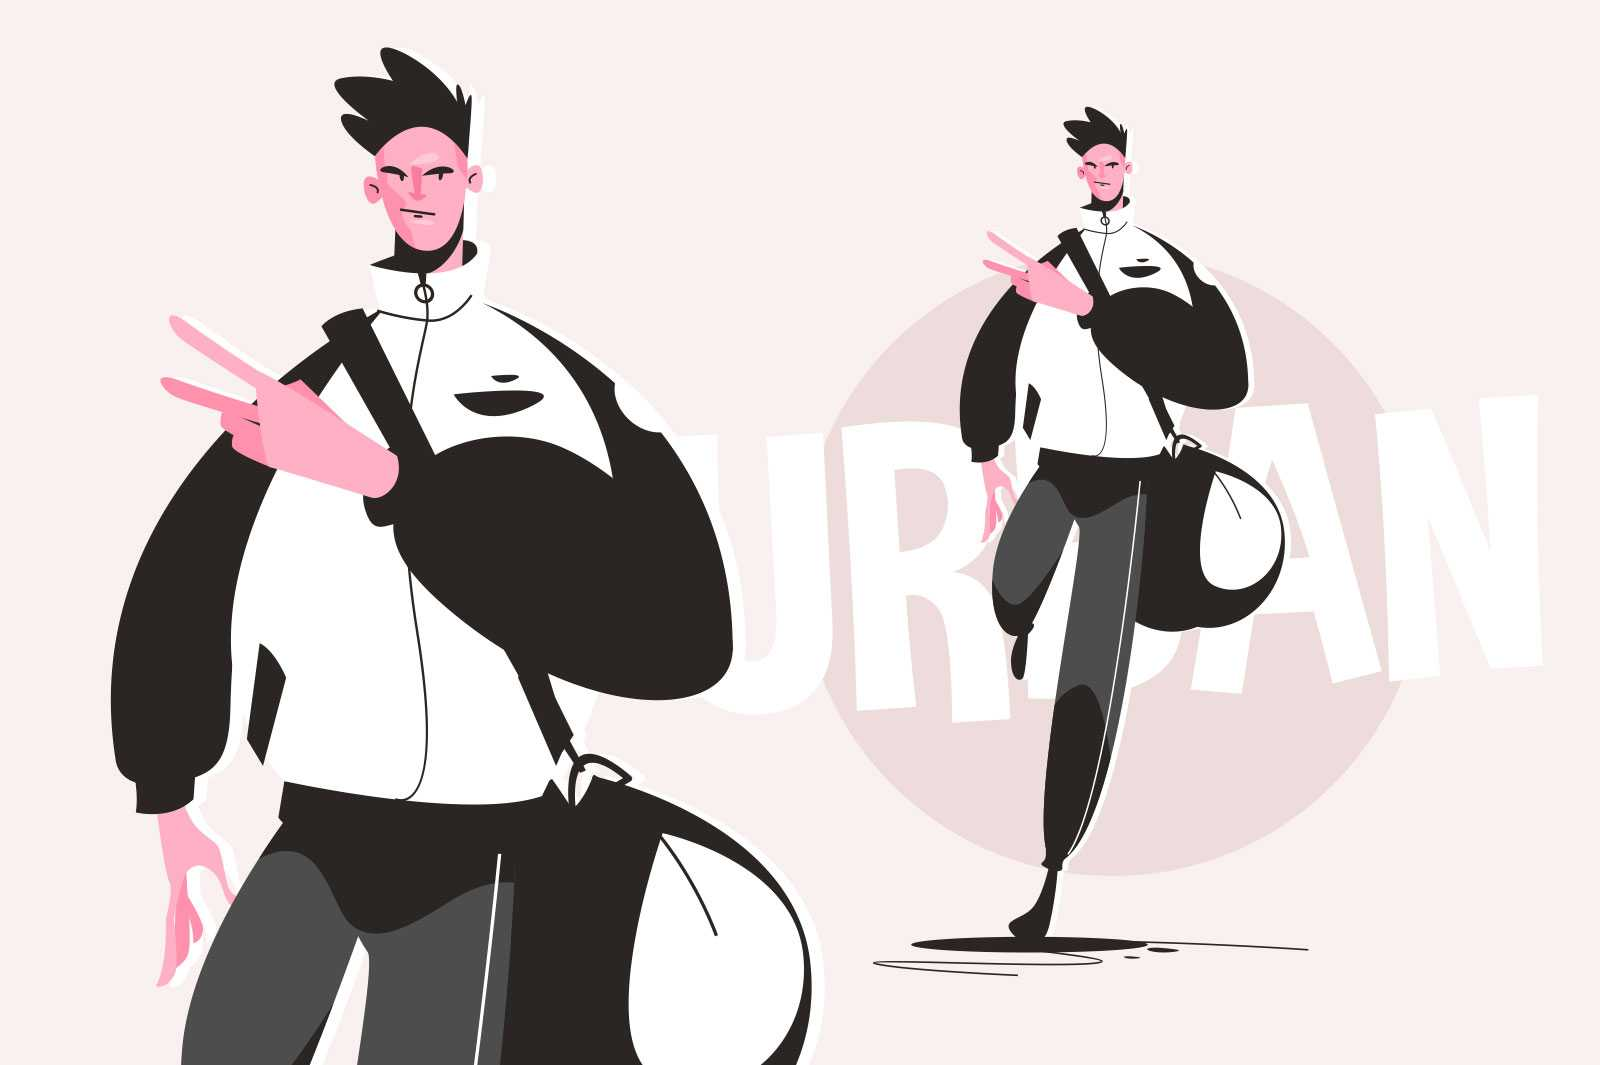 Well dressed urban guy vector illustration. Stylish man dressed in sport costume showing peace sign flat style. Fashion and street style concept. Isolated on pink background